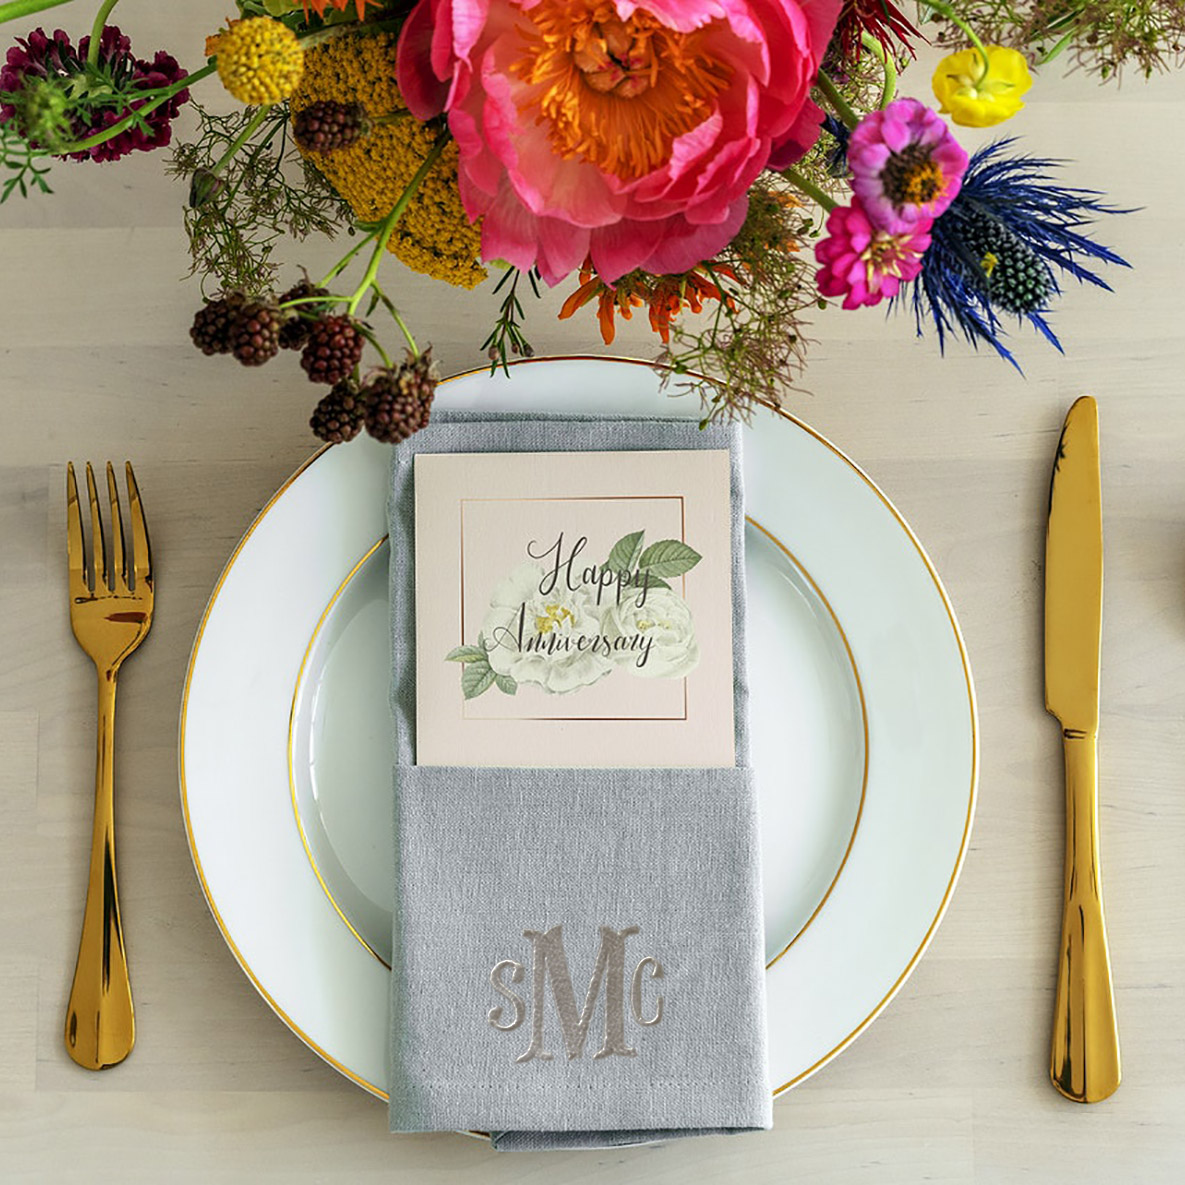 Monogram embroidered linen napkin